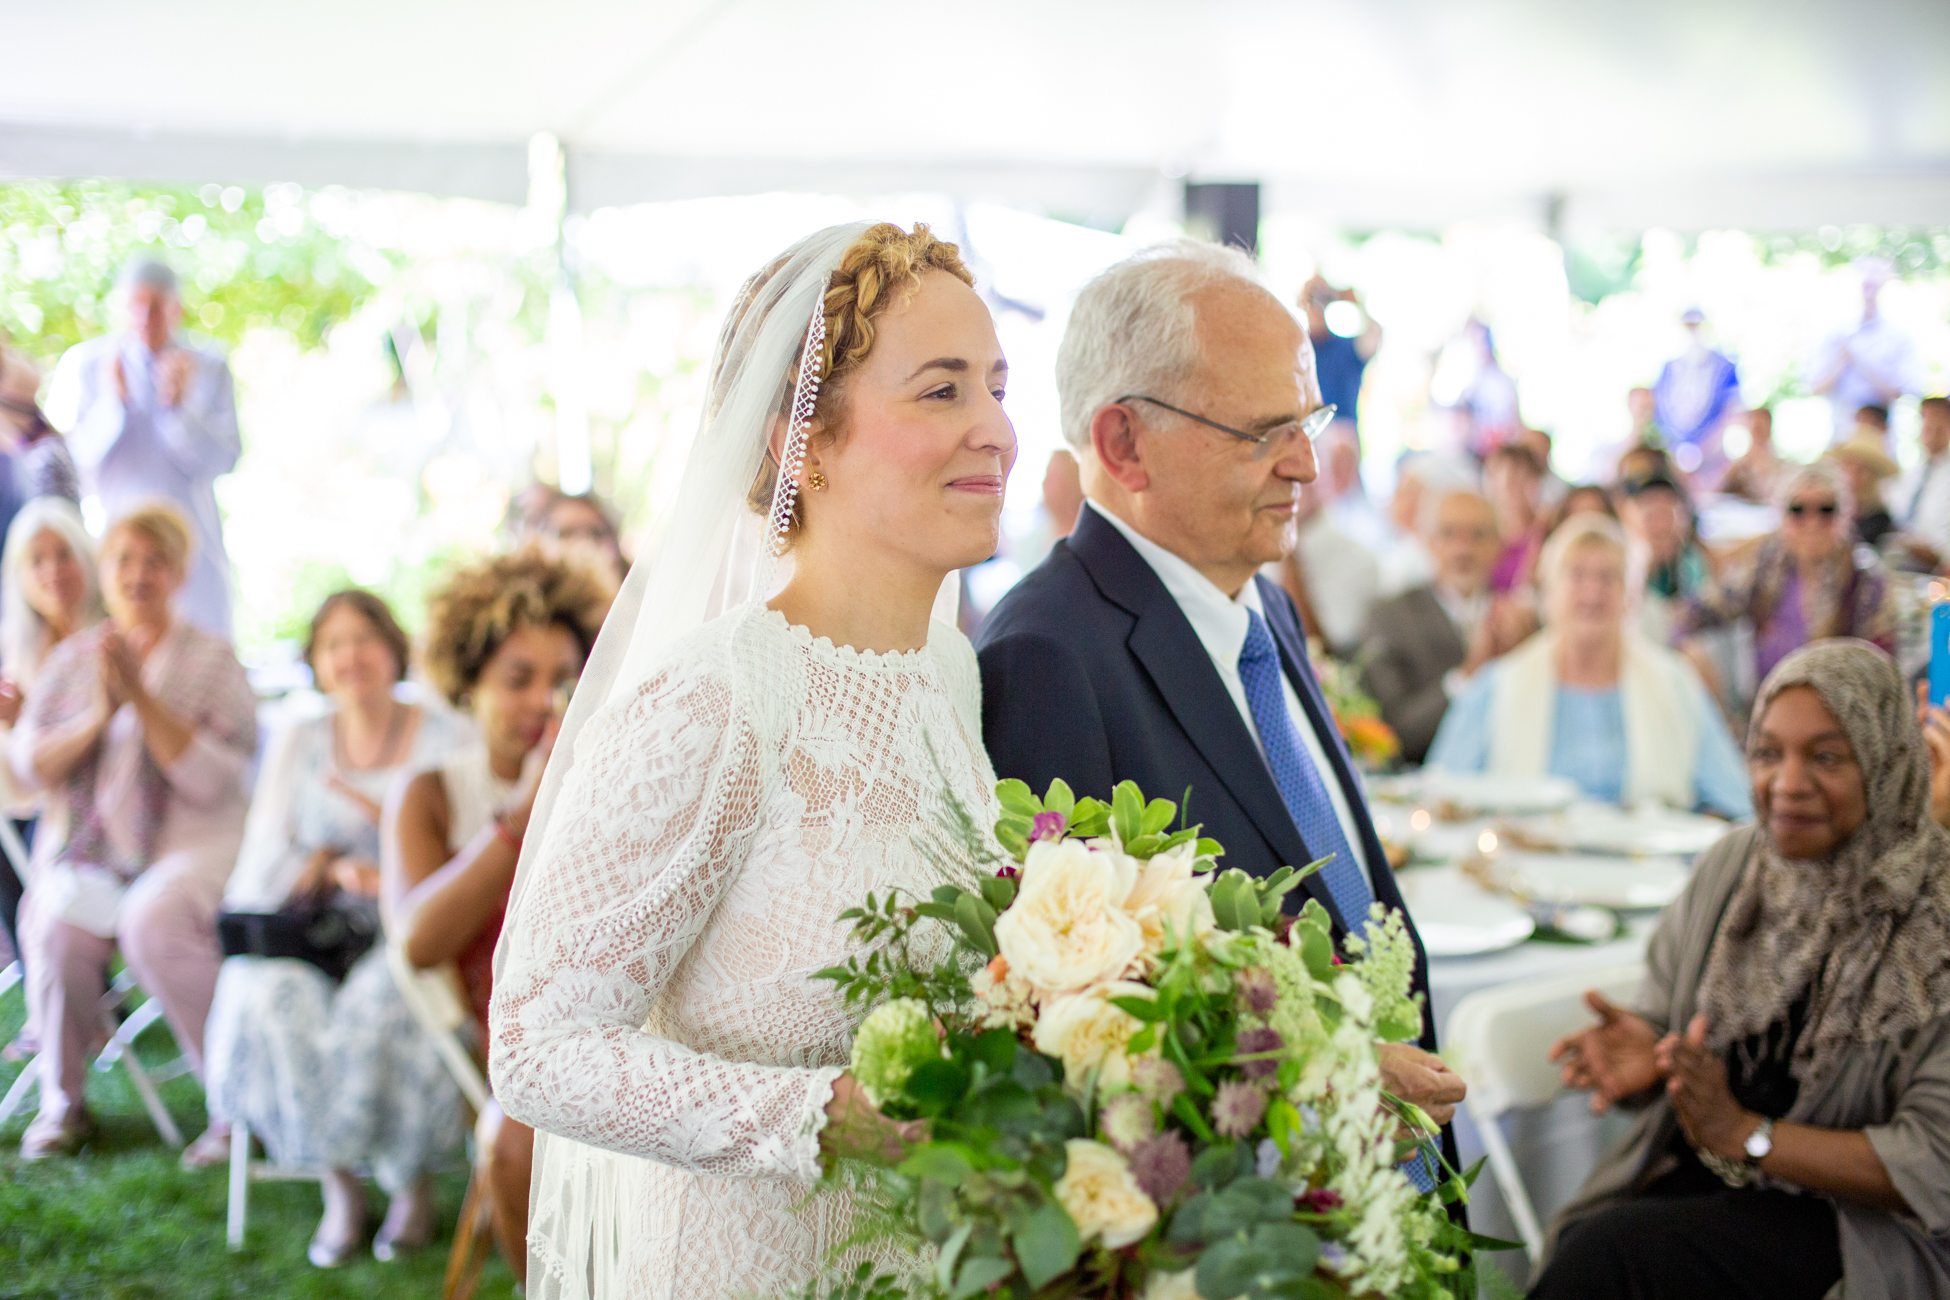 MaryFatimah and Noah's Summer Wedding at Bawa Muhaiyaddeen Fellowship Farm by Avi Loren Fox LLC-18.jpg